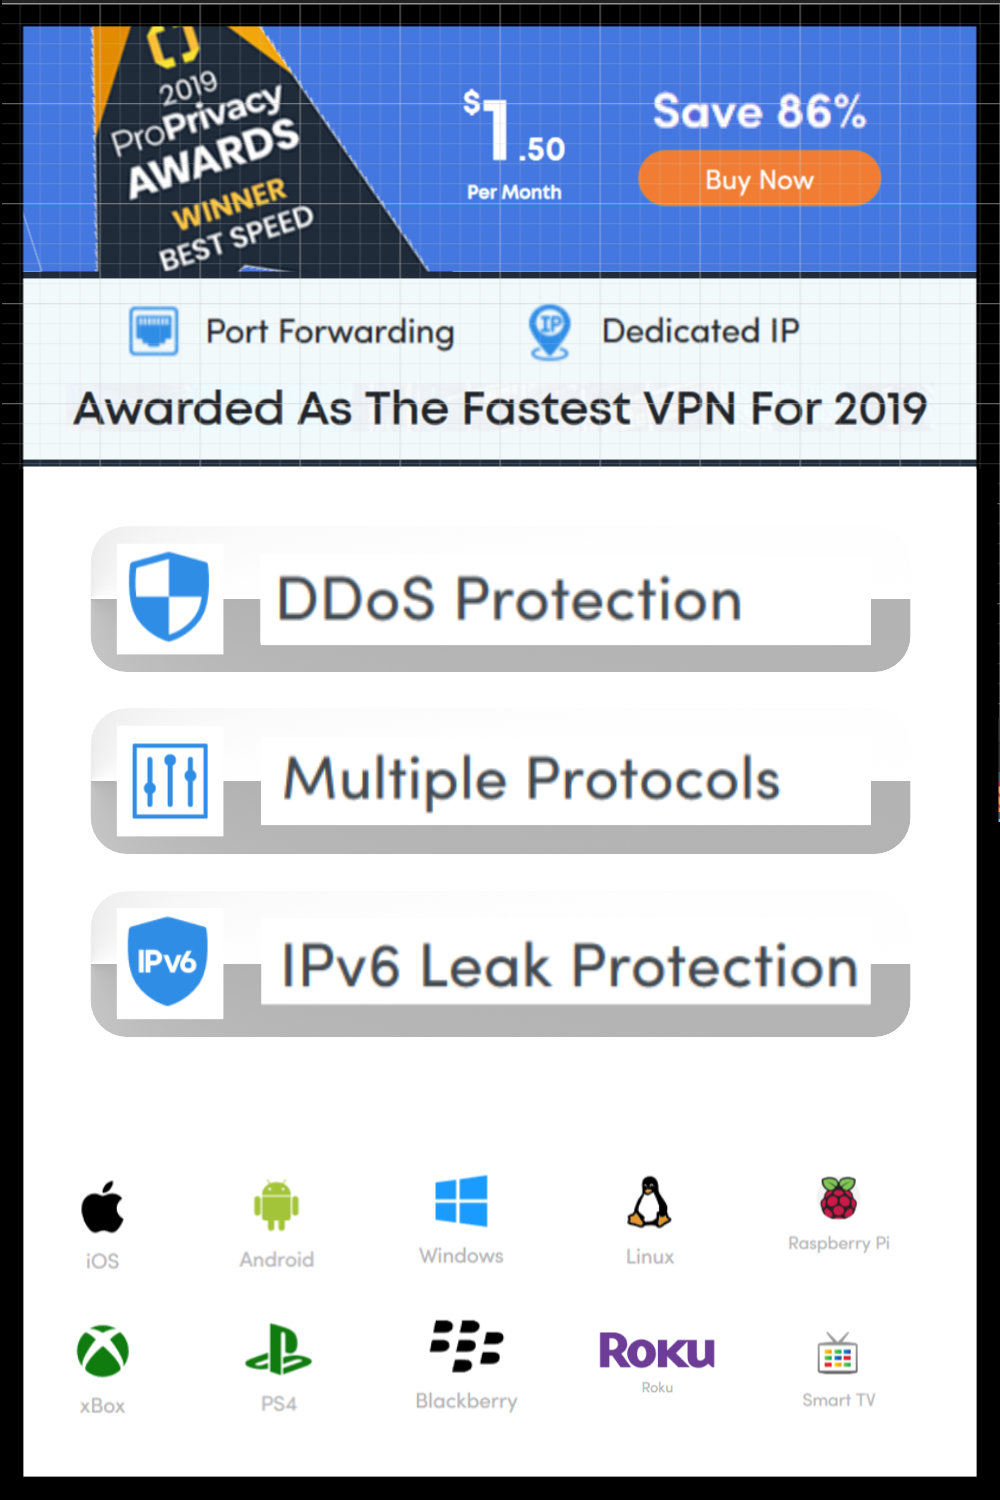 1th Place VPN Provider. Can be used on Smartphone, Desktop